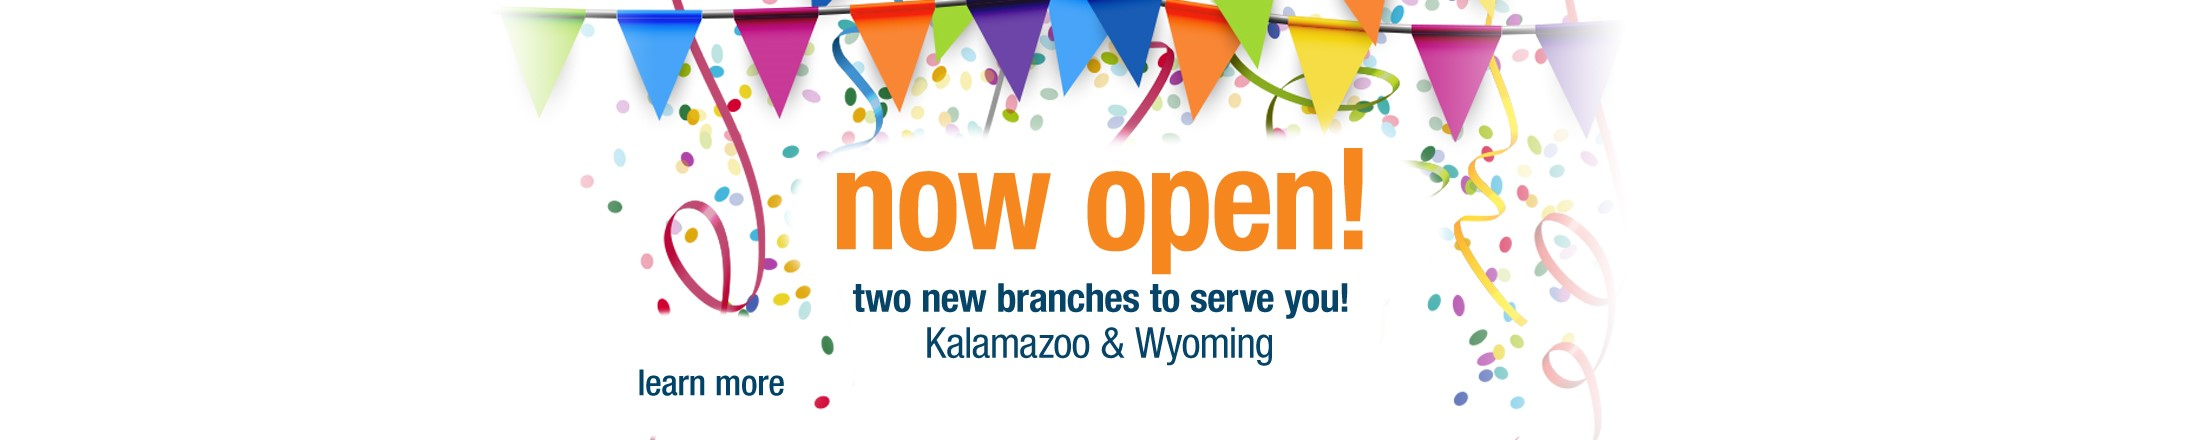 Two New Branch locations now open